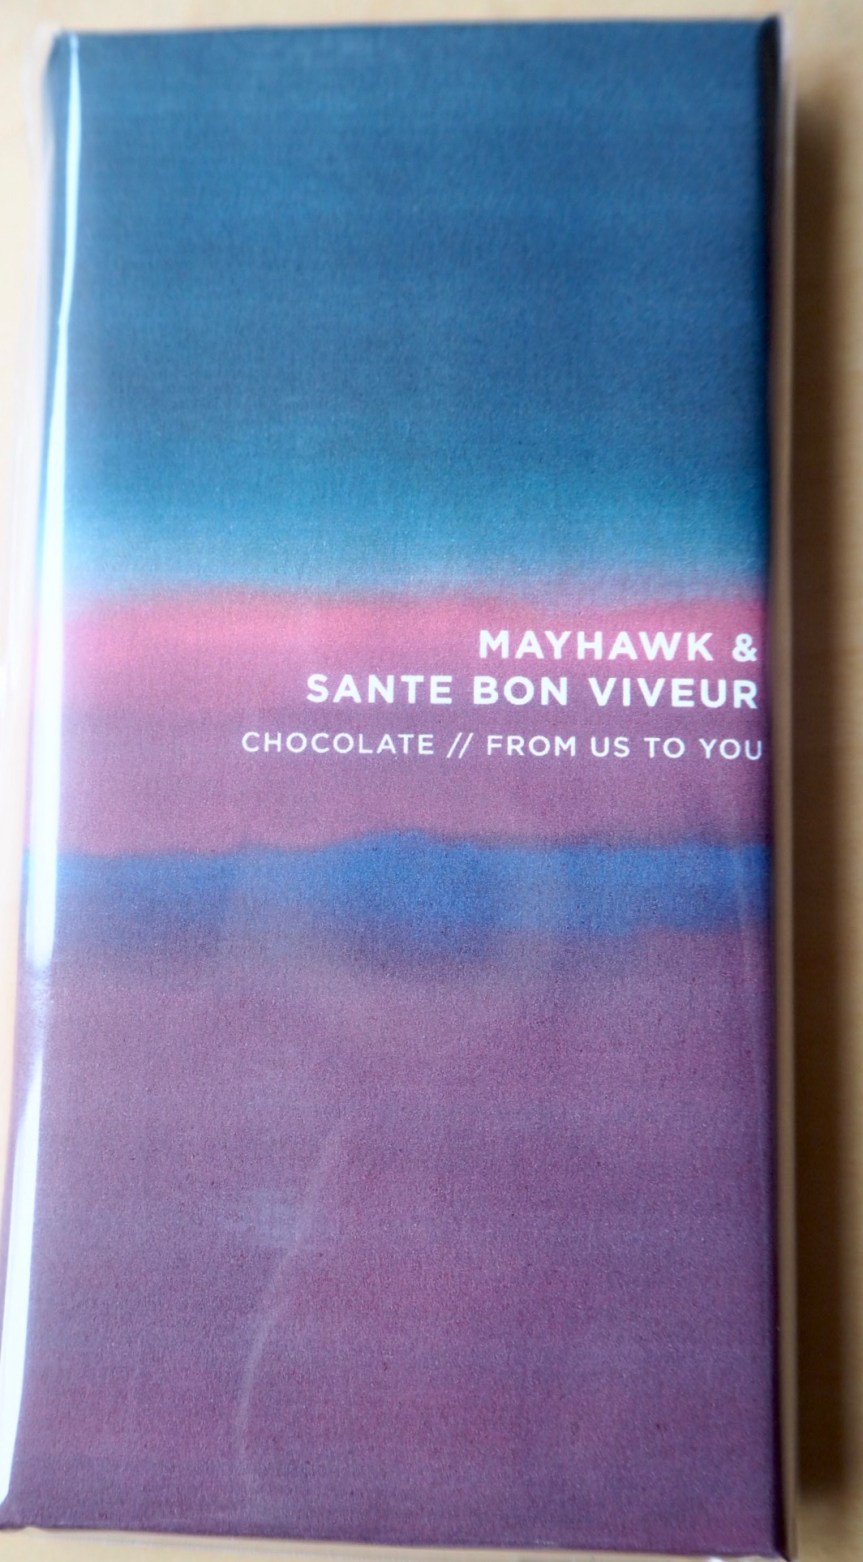 Mayhawk & Santé Bon Viveur Craft Chocolate. Chocolate competition